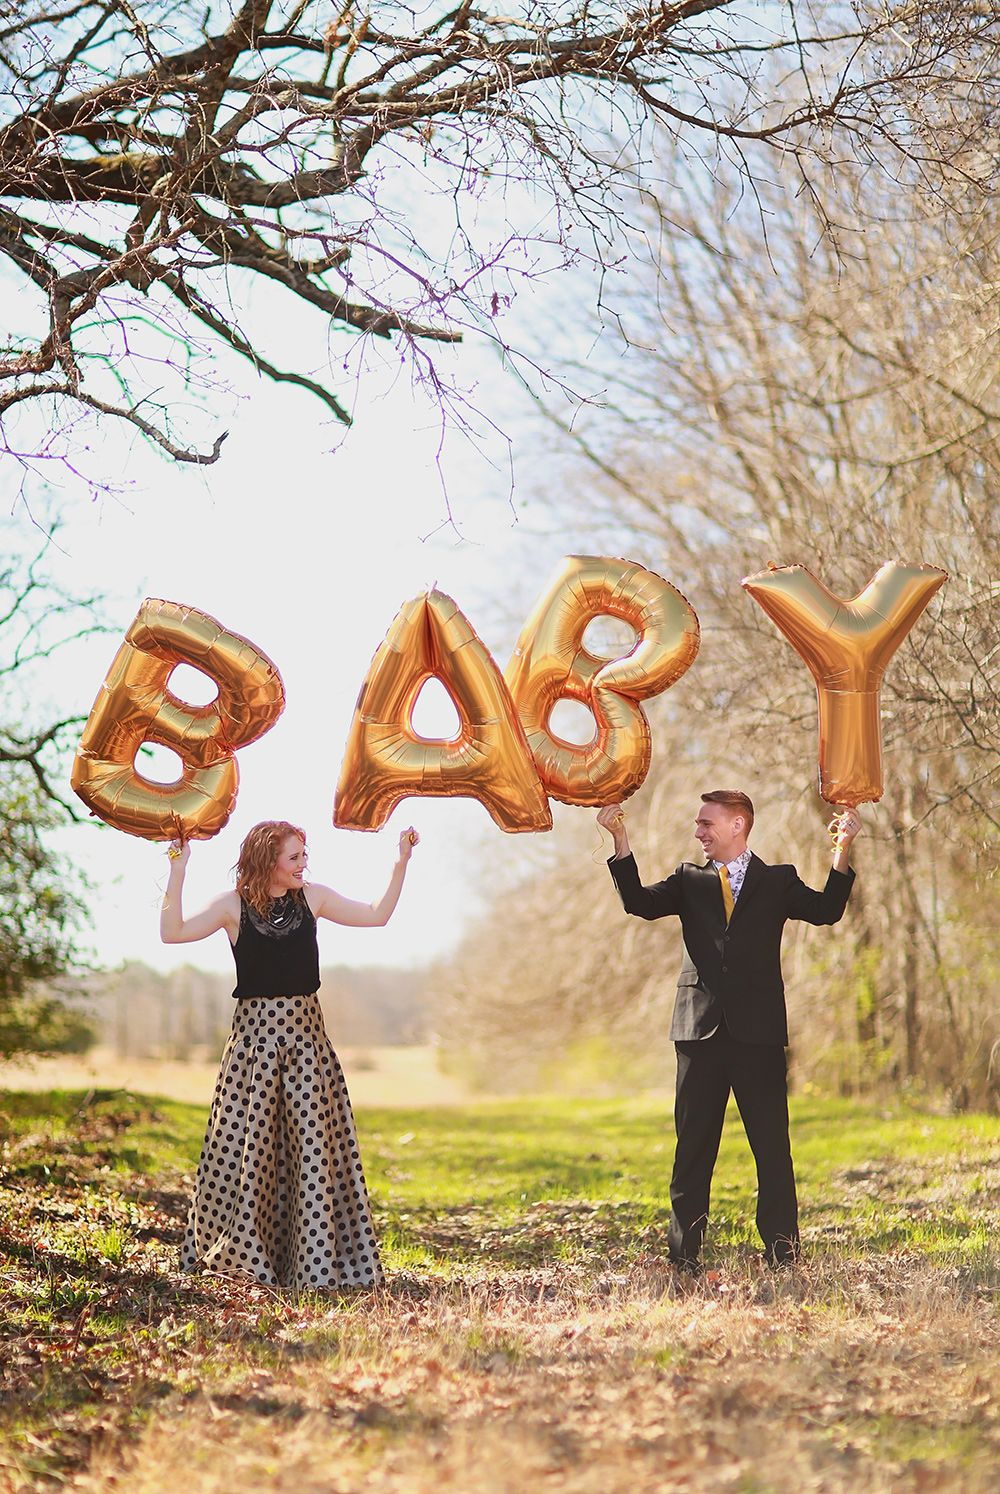 Baby announcement with gold balloons cute – Pinterest Baby Announcement